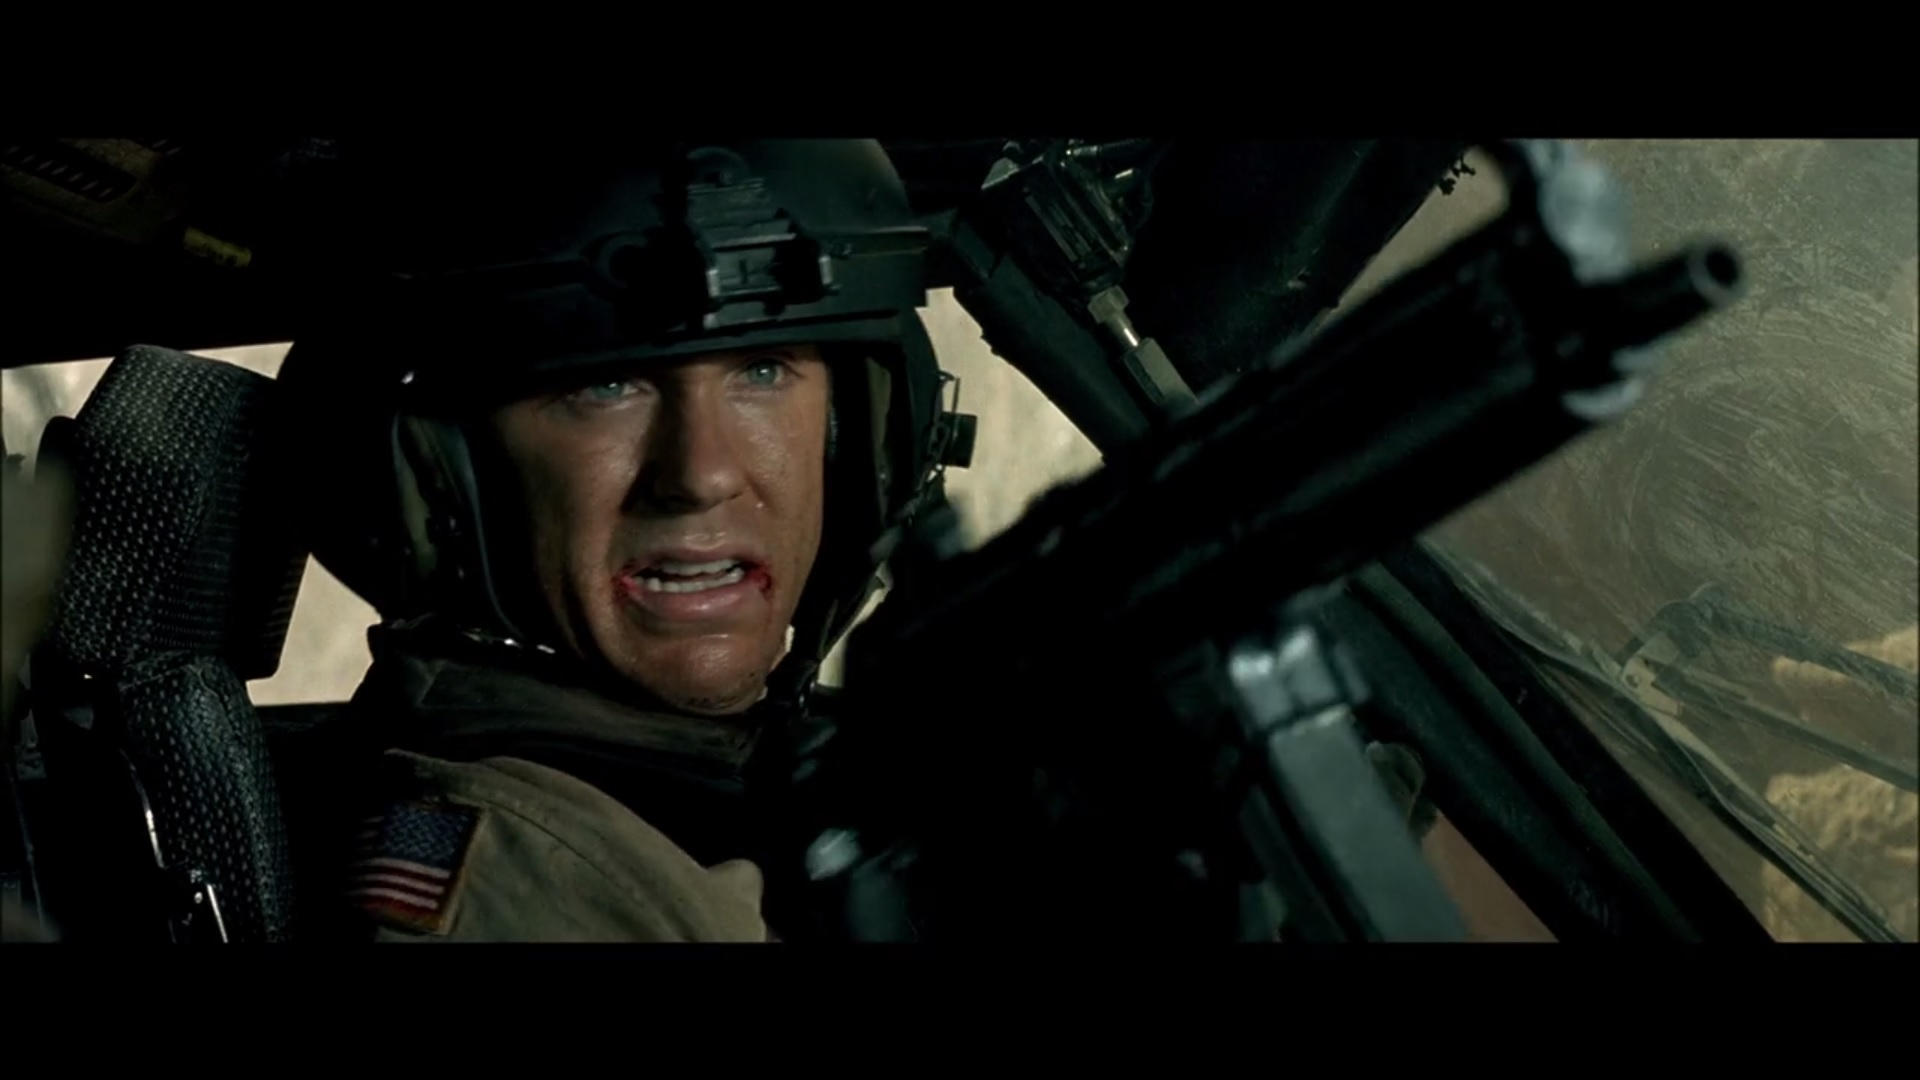 an analysis of the films apollo 13 black hawk down zero dark thirty and boardwalk empire The black hawk designated super 61, piloted by cw3 clifton elvis wolcott note was the first of the two black hawks to be shot down during the first battle of mogadishu in 1993 he was noted as always being extremely calm on the radio.